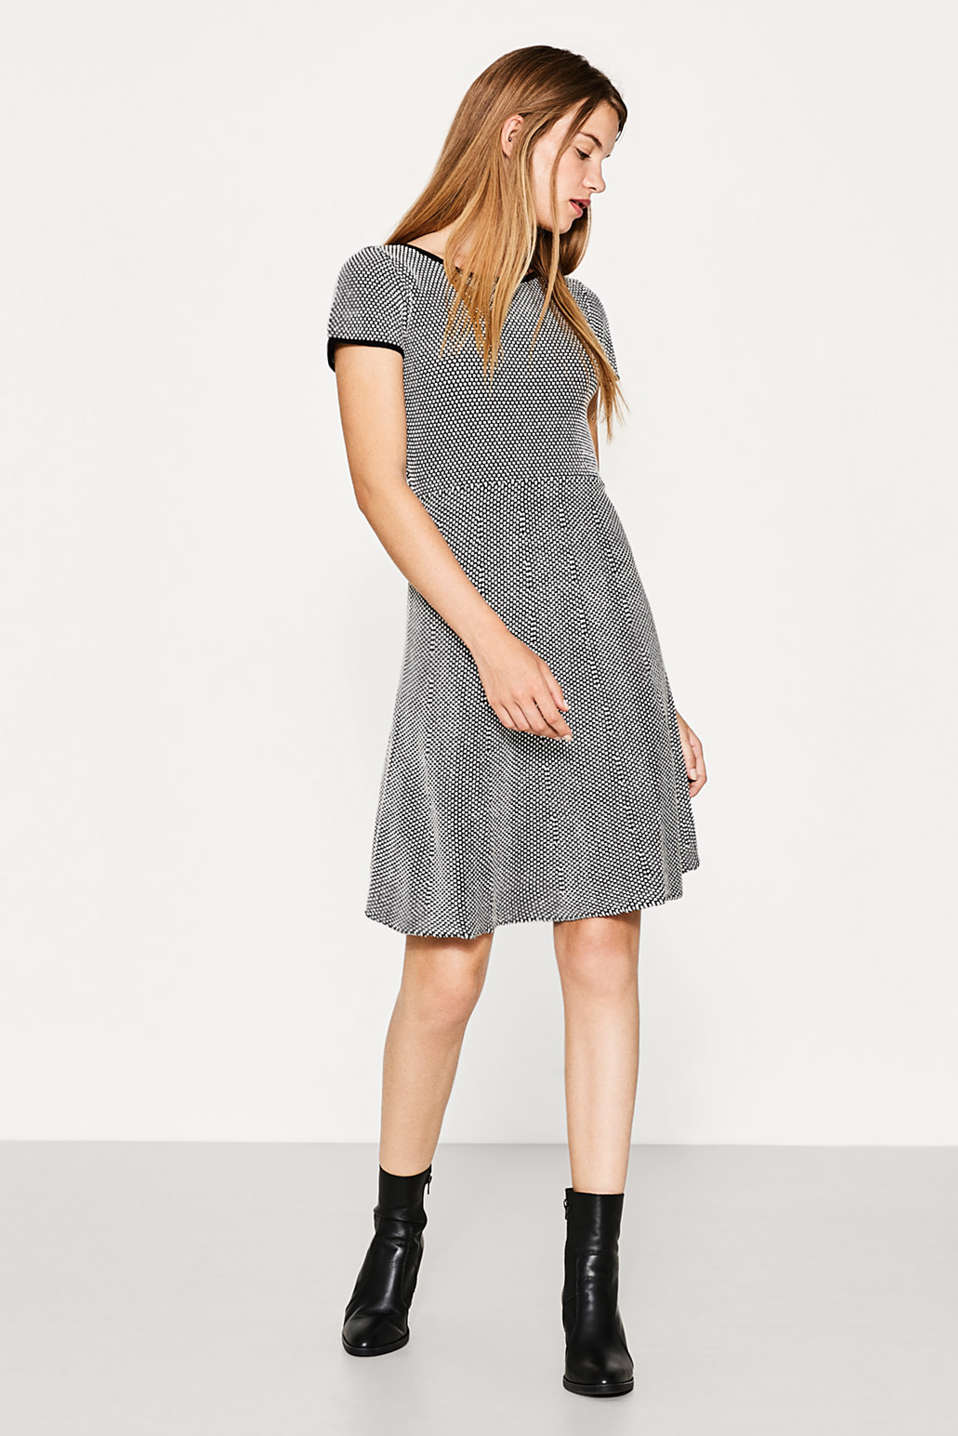 Textured knitted dress, blended cotton